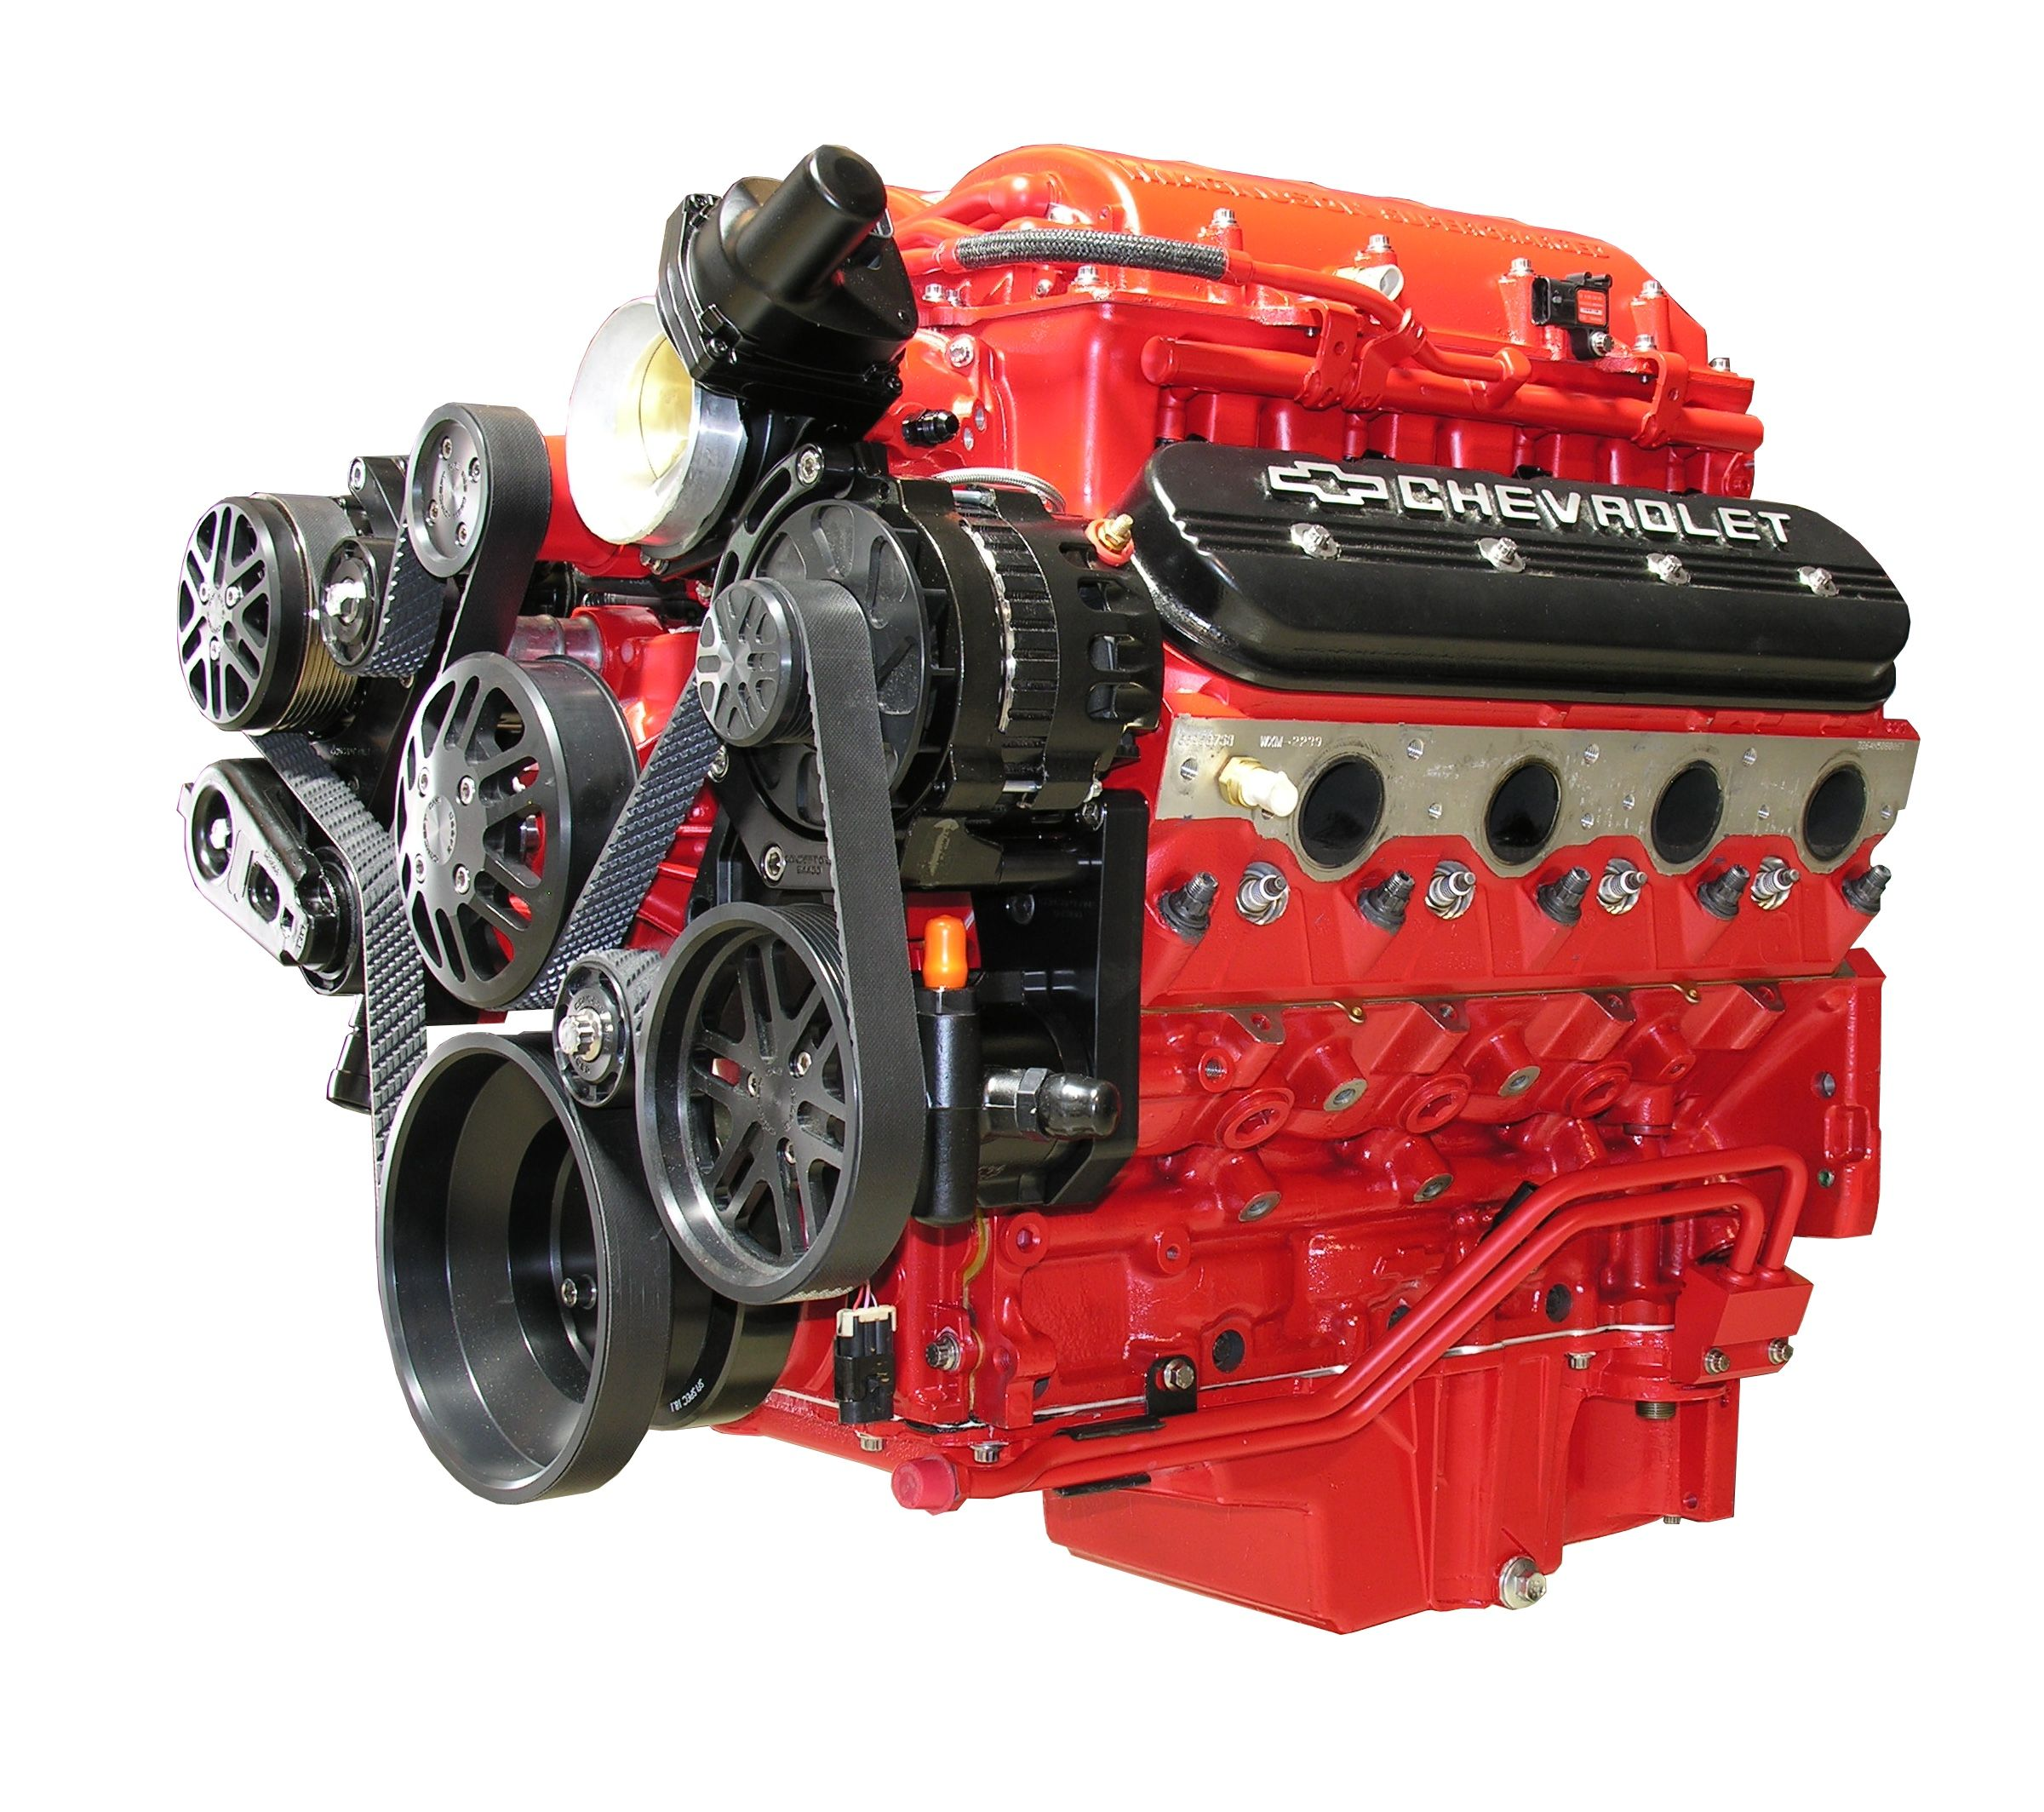 Ls1 Supercharger Magnuson: This Custom LSx 427 Engine Is Designed For Style